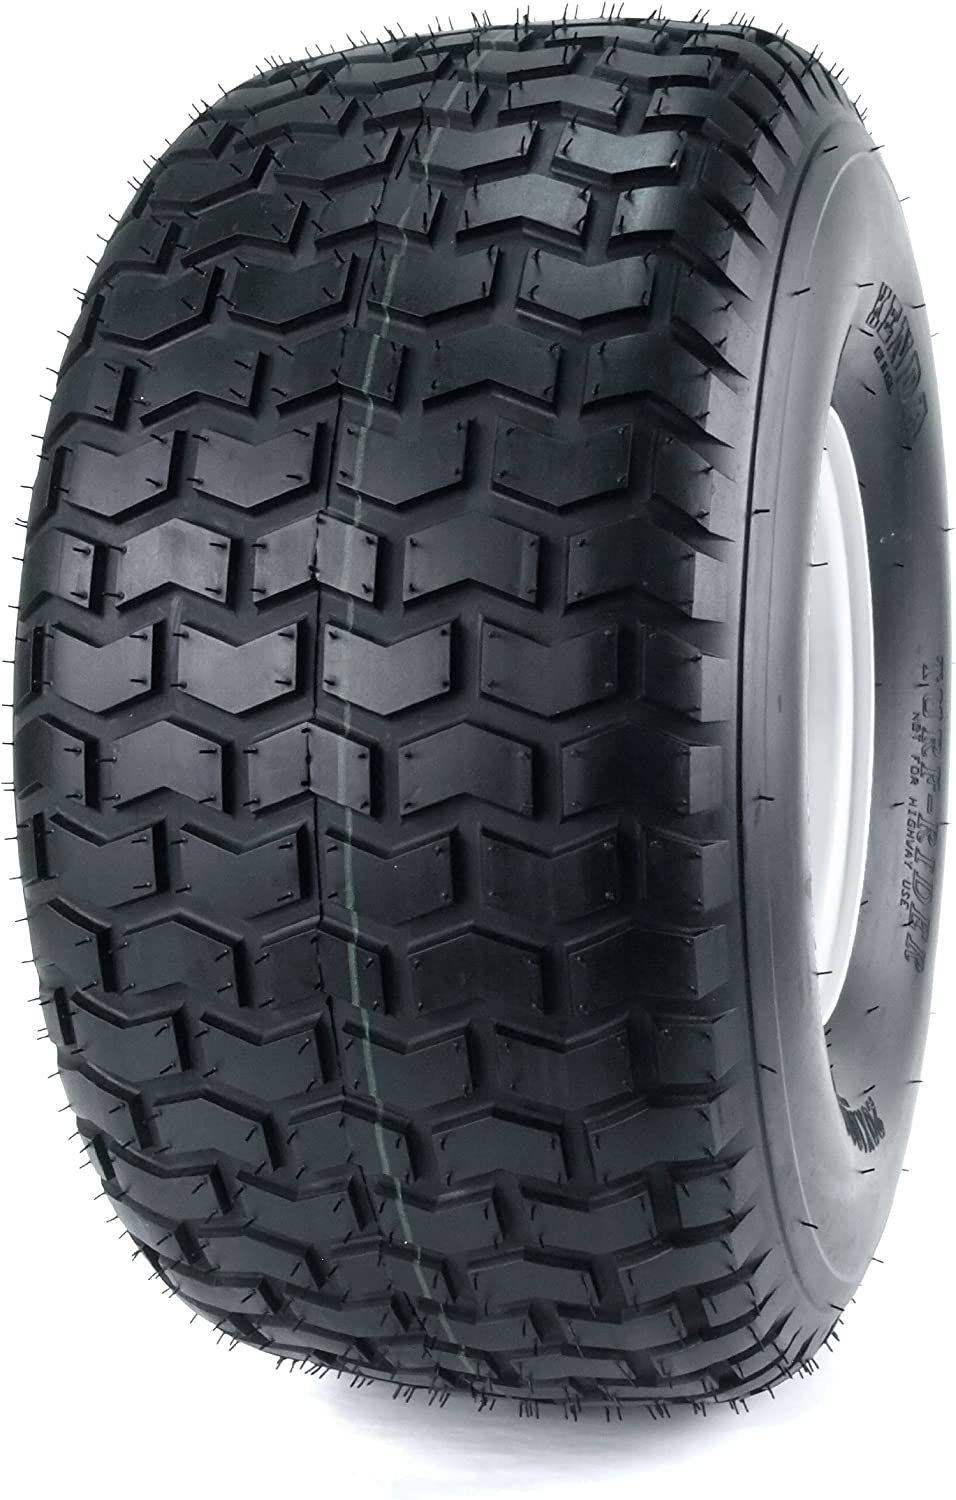 Kenda K358X Turf Rider Lawn and Garden Bias Tire - 20/8-8